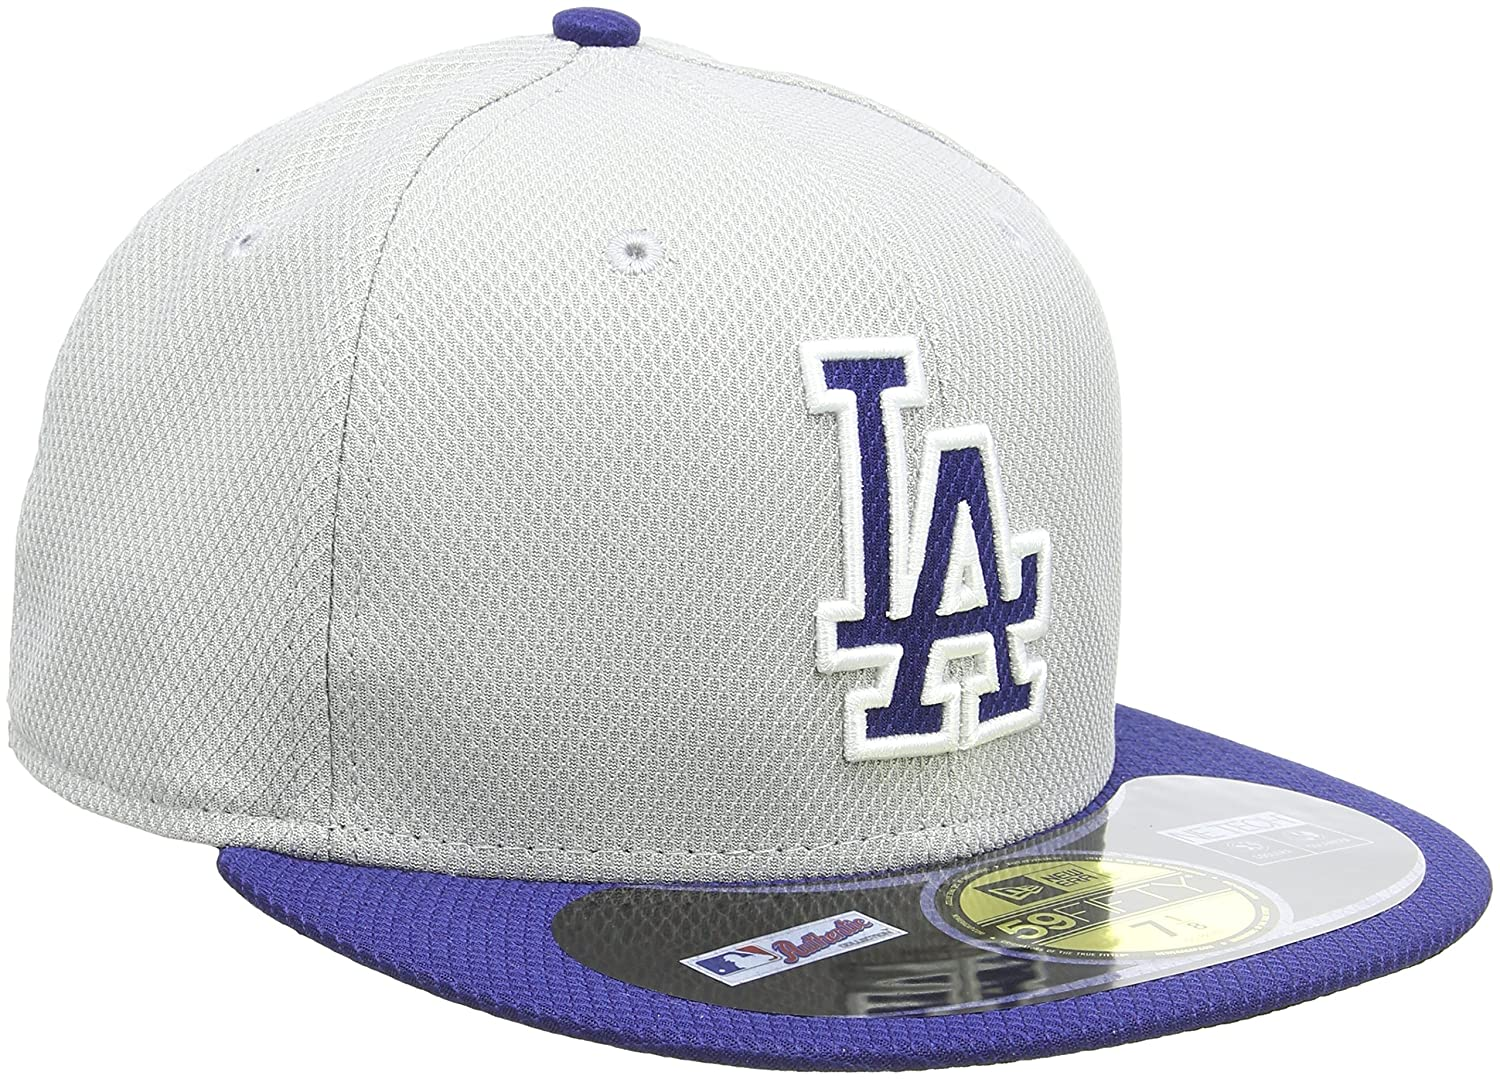 New Era Era - MLB Diamond Era LA Dodgers 59Fifty Fitted, Berretto da Uomo 10757139